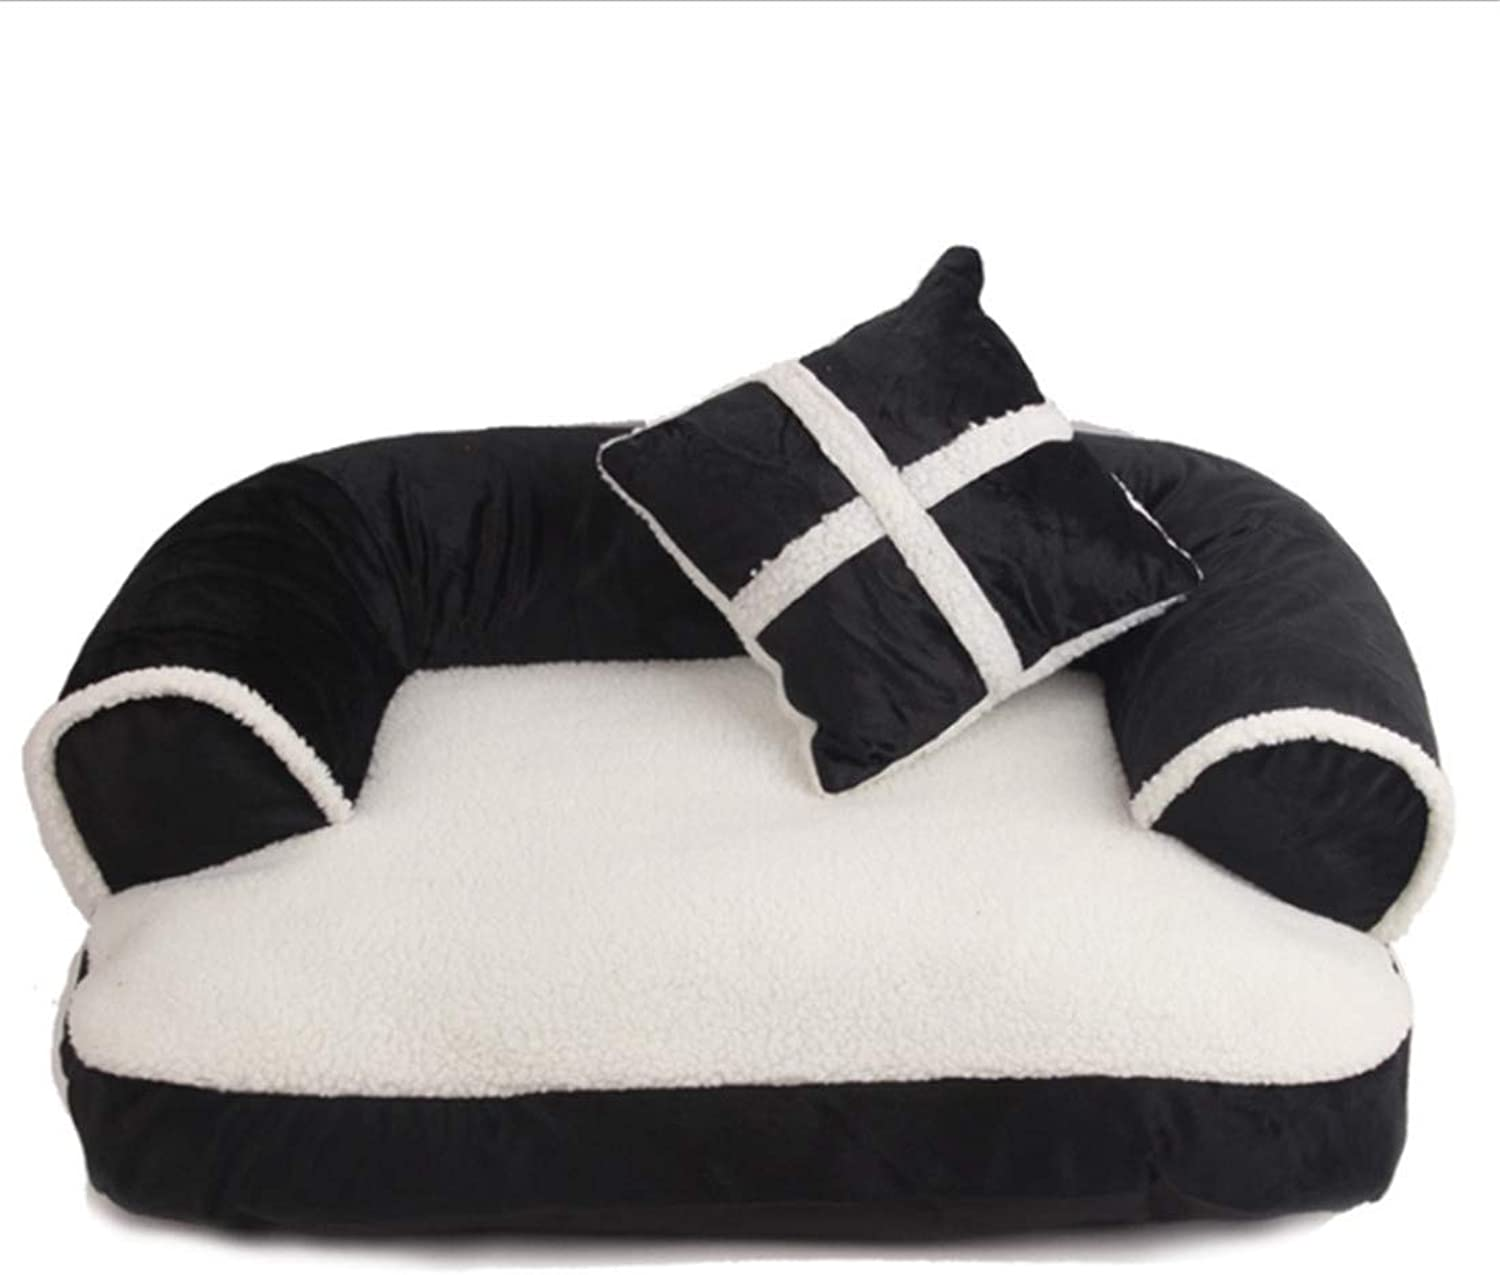 Fashion Kennel Cat Nest Pet Sofa Four Seasons Universal Filled PP Cotton Soft and Warm Detachable Cleaning Includes Pillows   3 Sizes